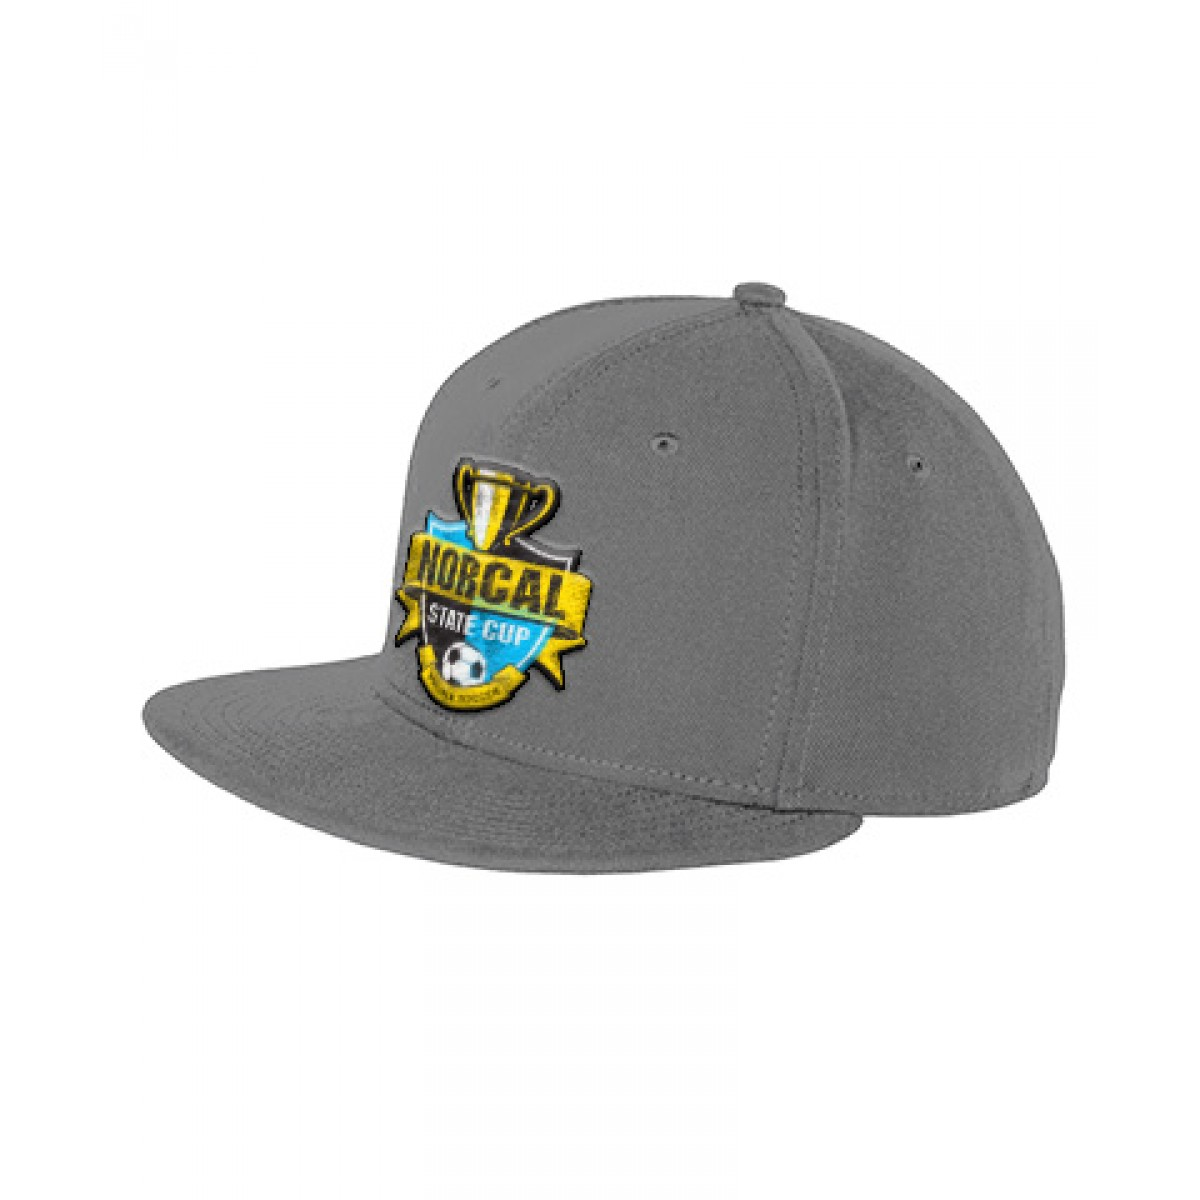 Embroidered New Era Original Fit Flat Bill Snapback Cap-Gray